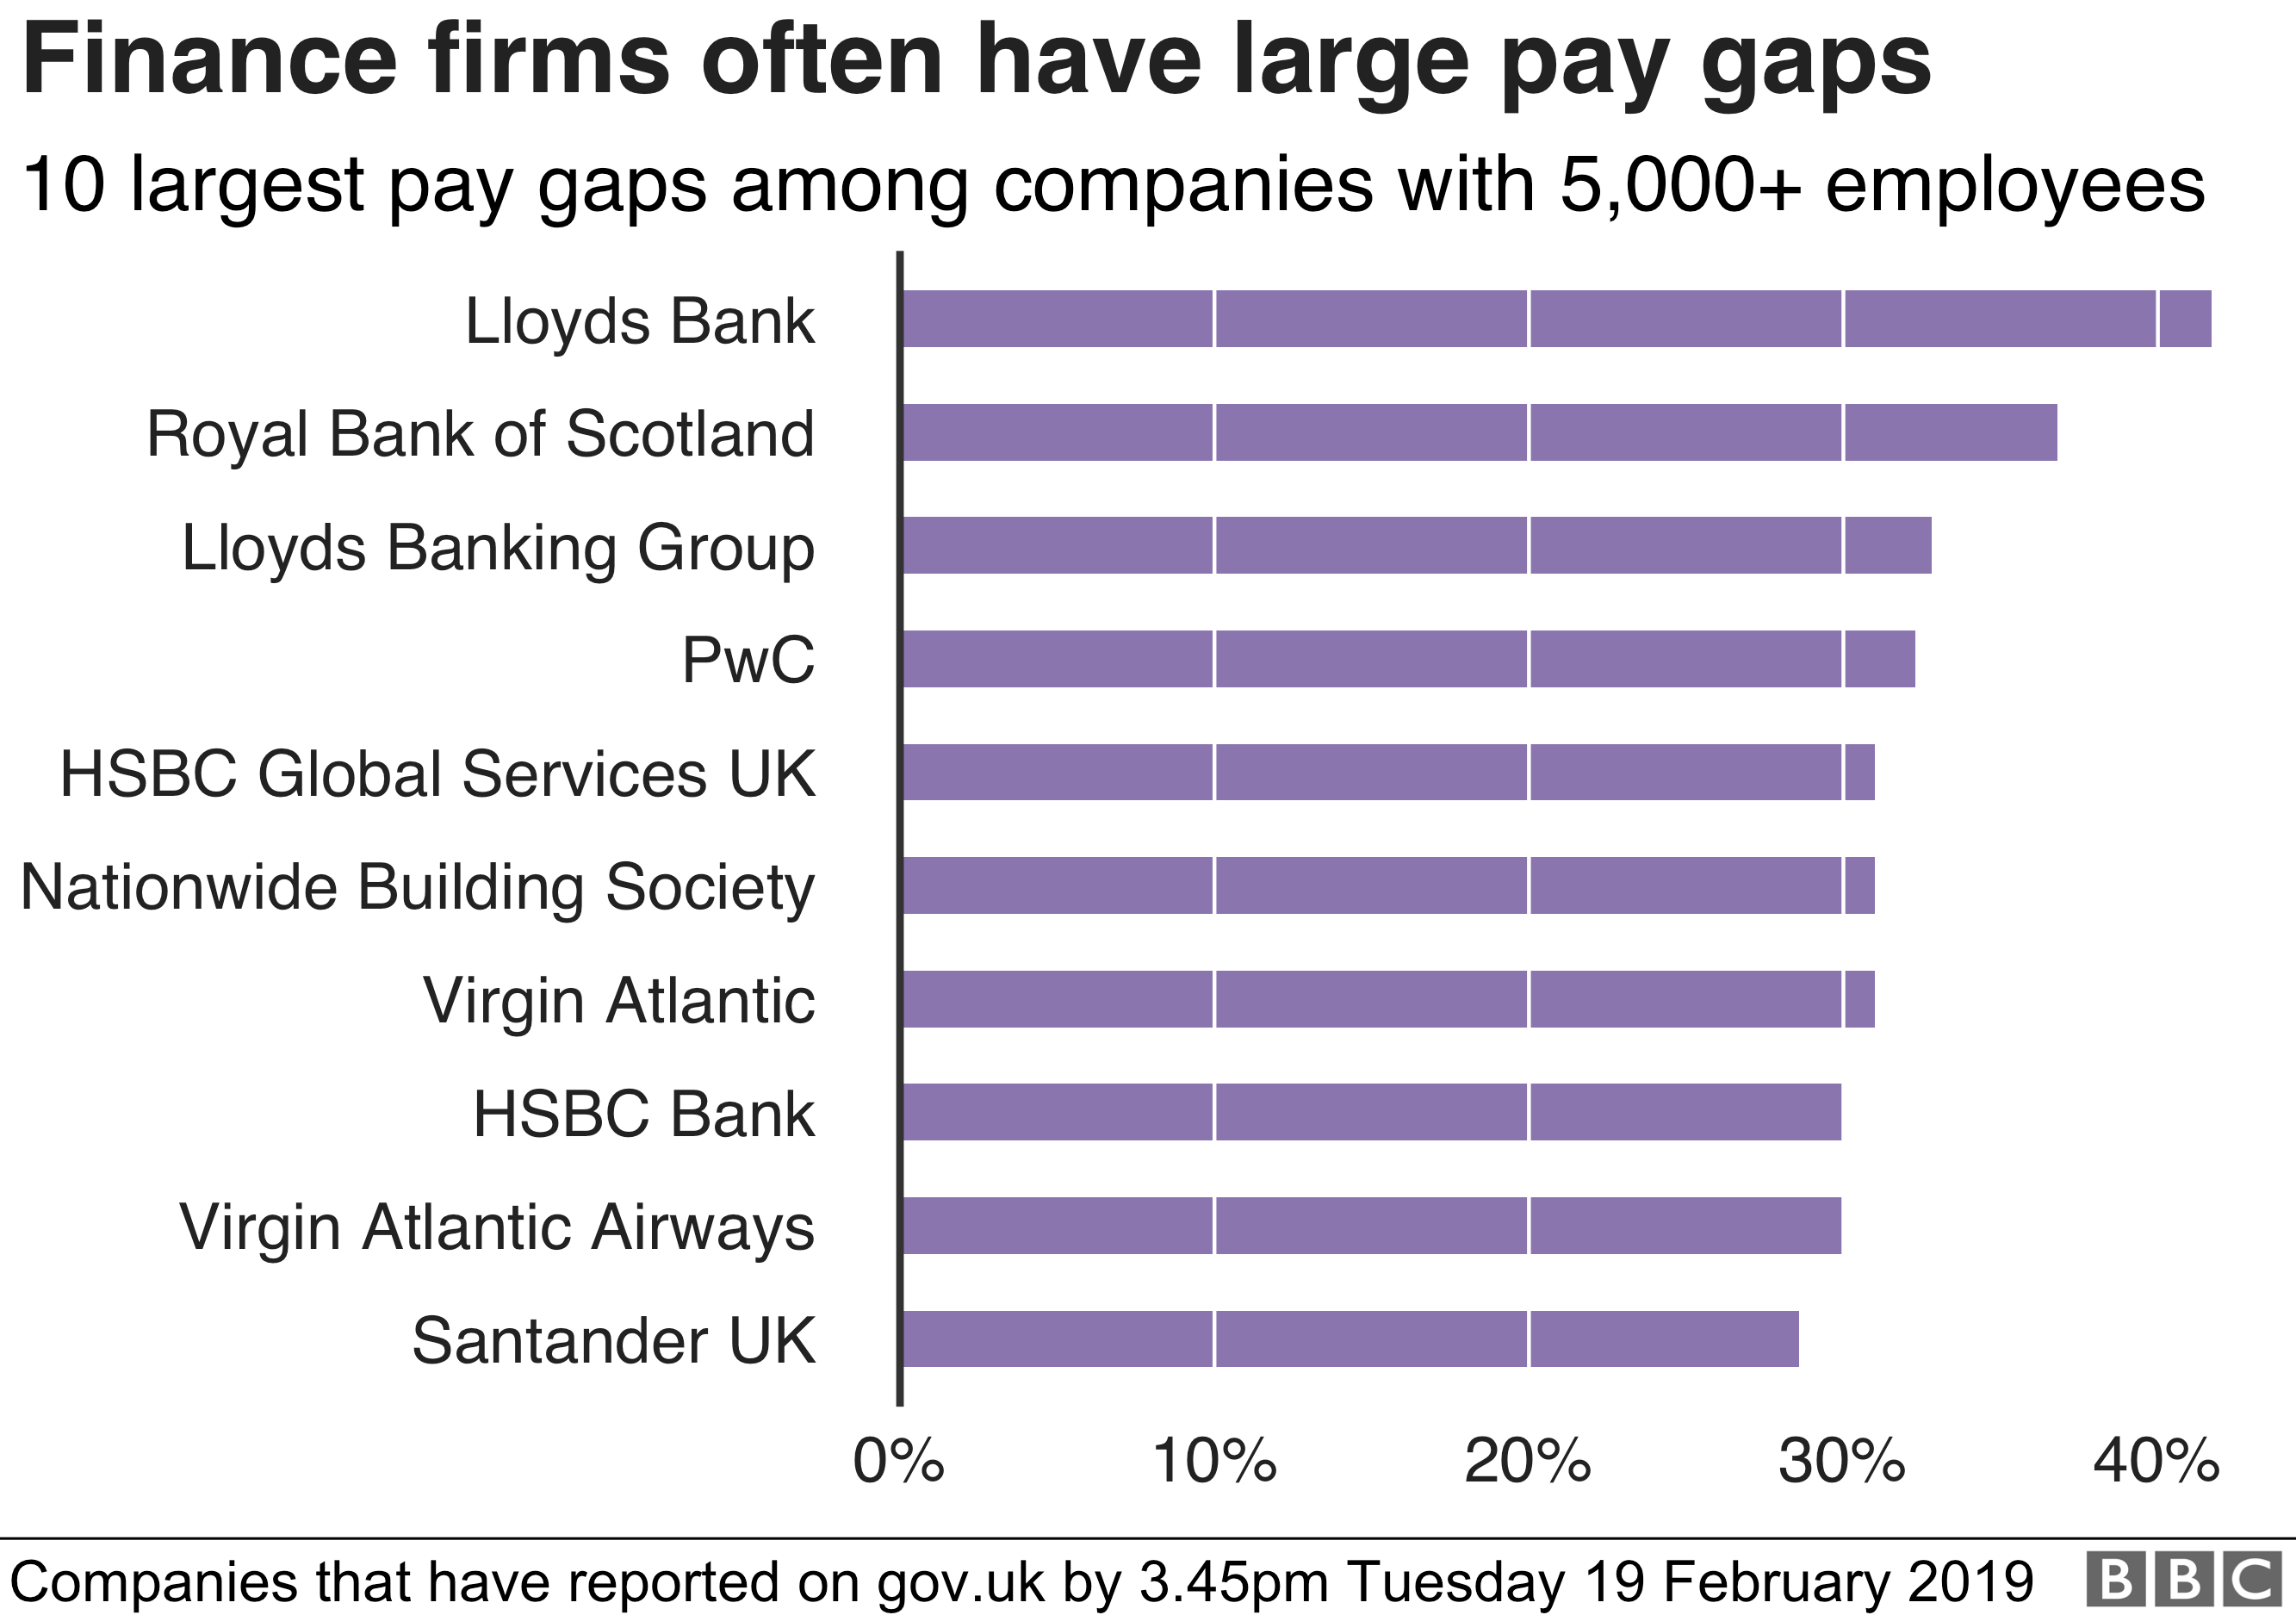 Chart of gender pay gaps at finance firms.